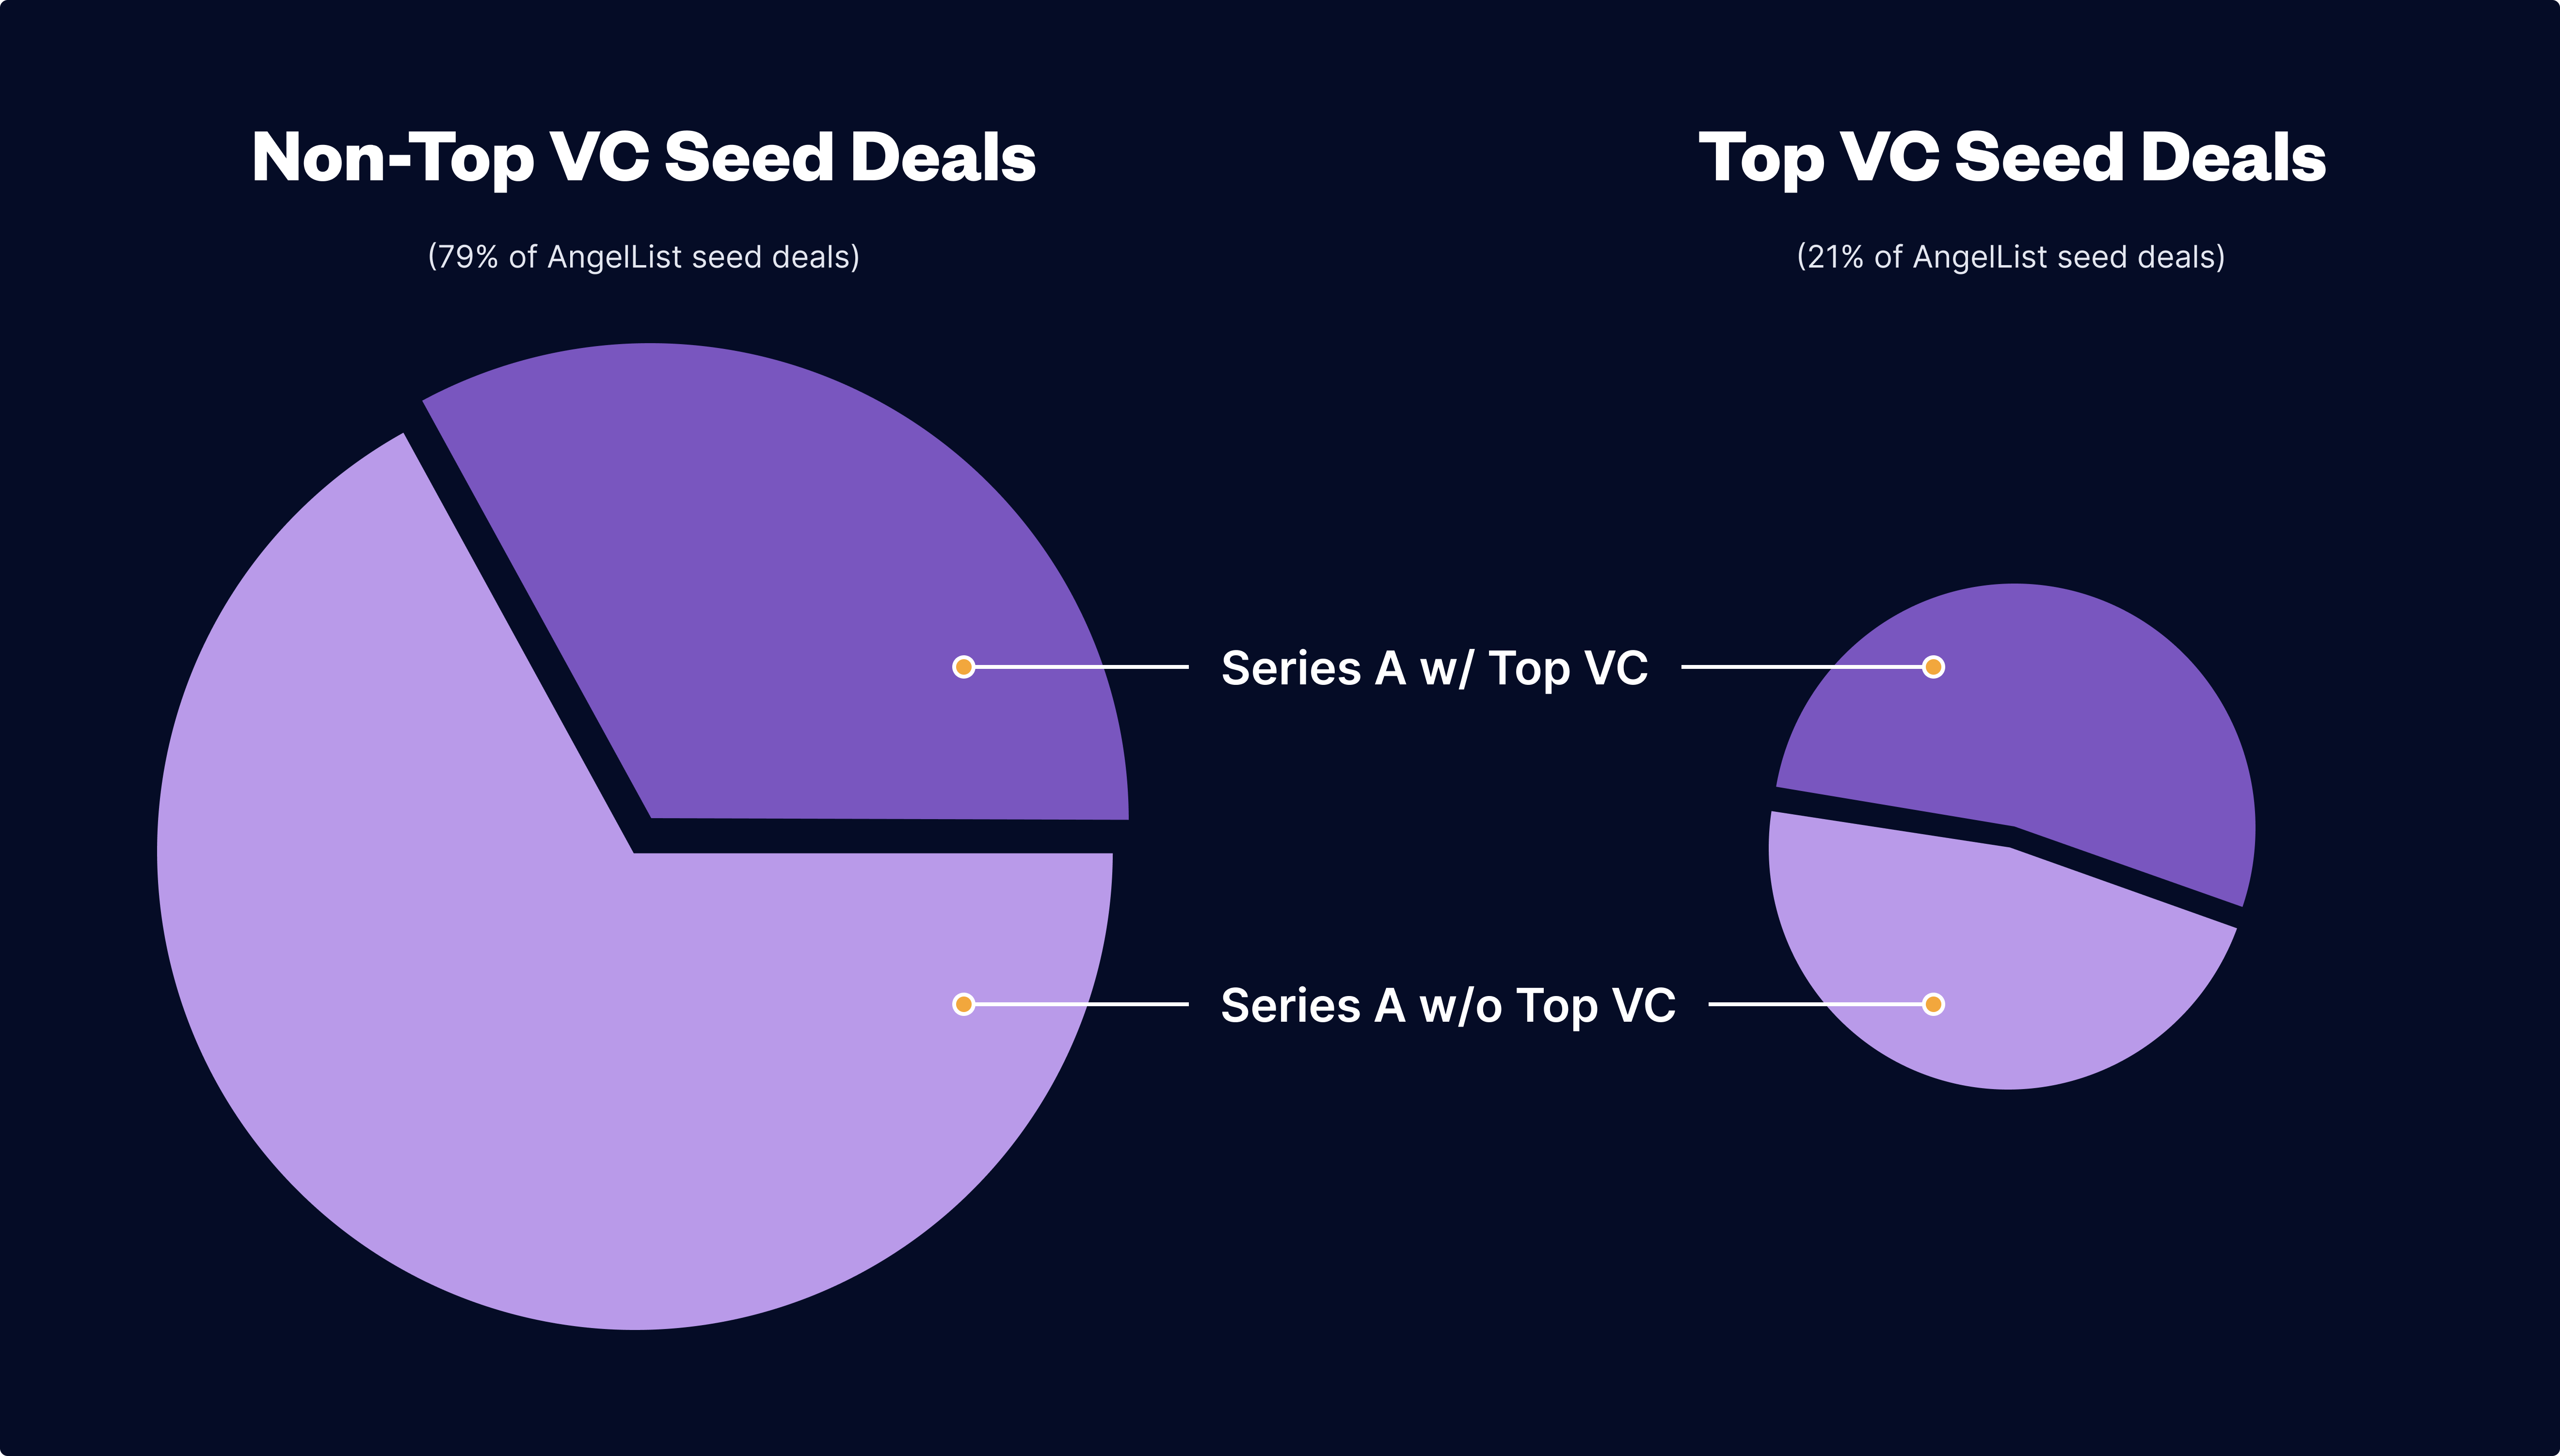 non-top vc seed deals vs top vc seed deals